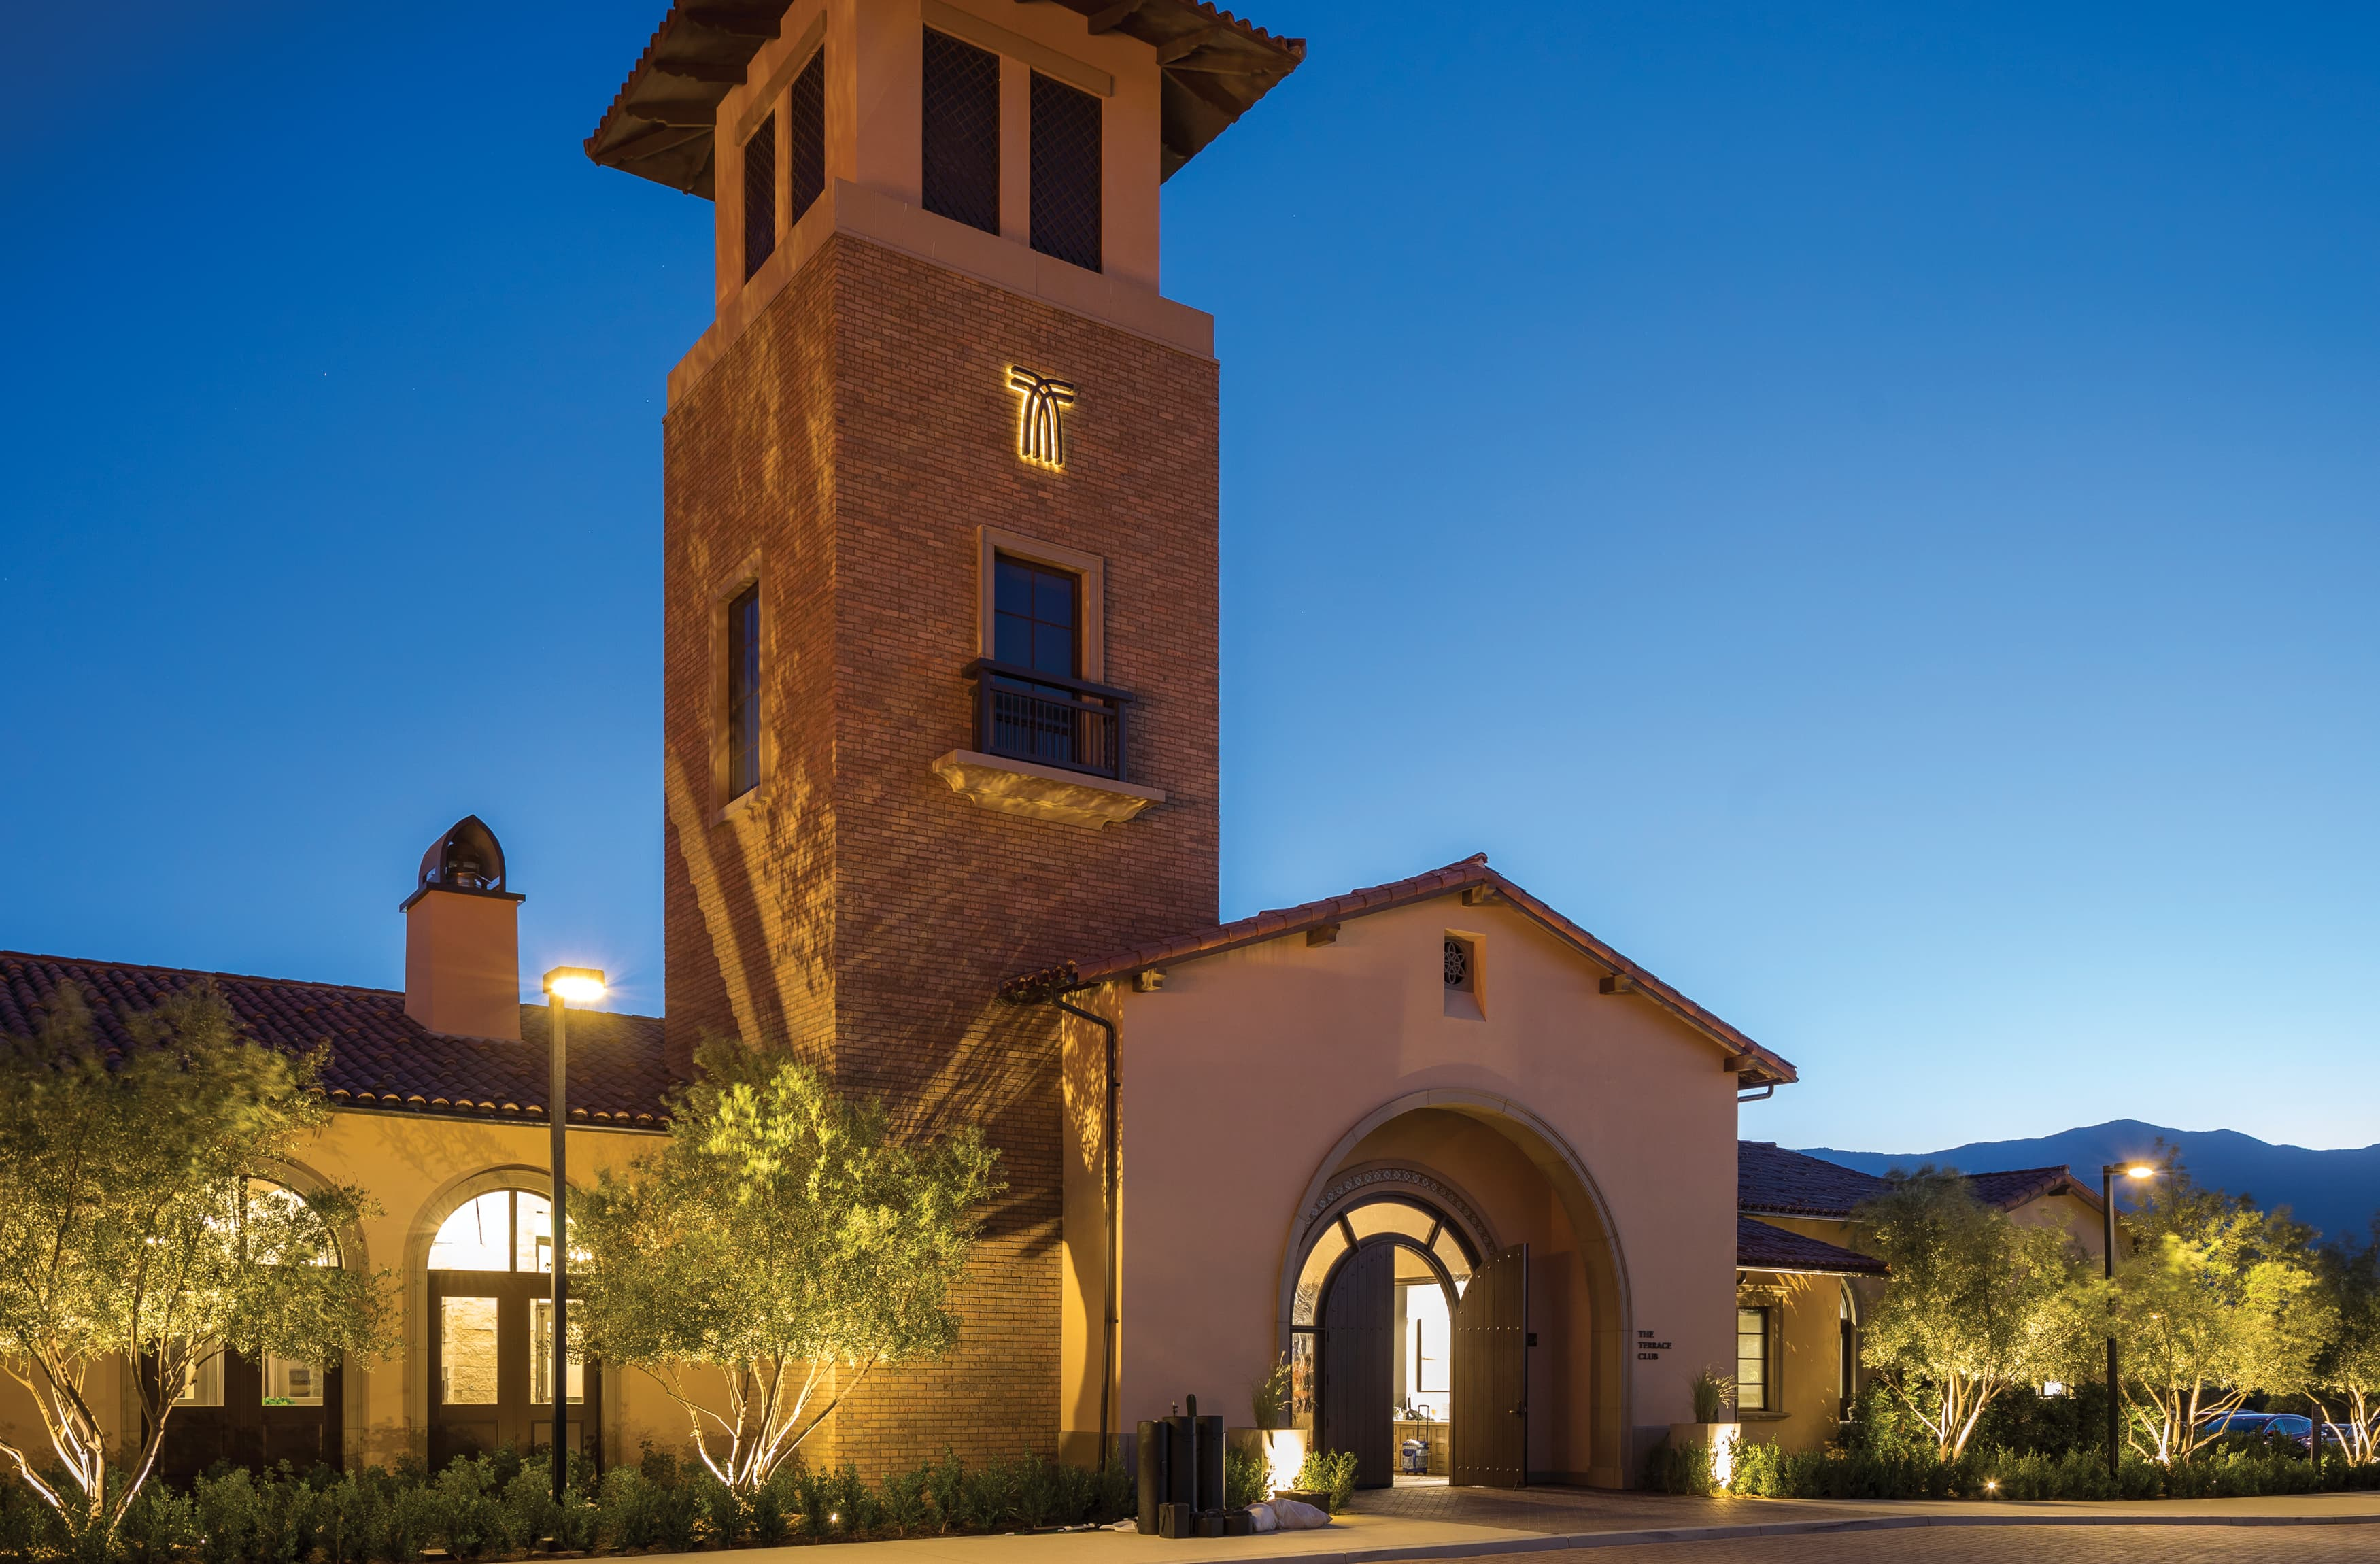 Terramor, a residential community in Corona, California. RSM Design. Illuminated Project Identity.